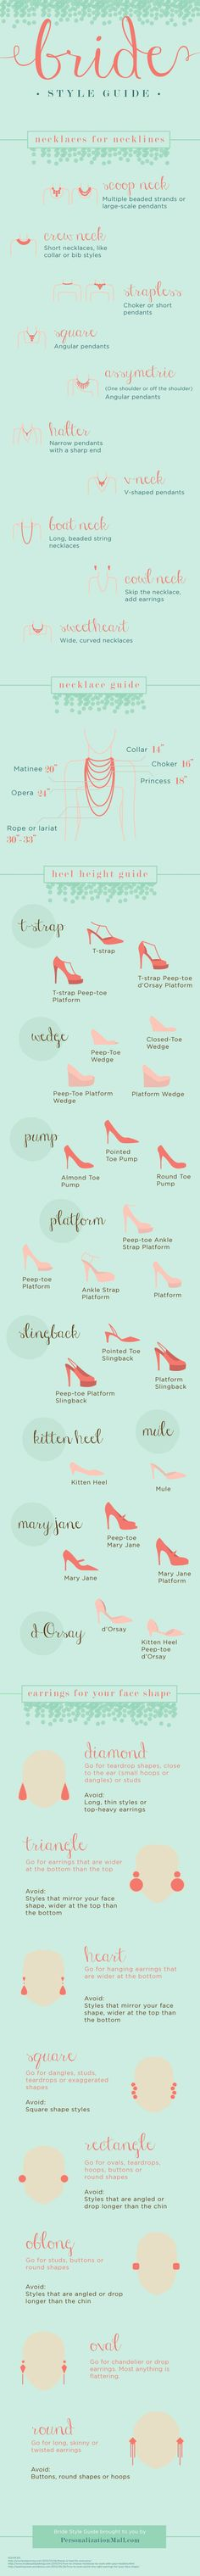 Check out this awesome bridal accessory guide that helps you find the perfect jewelry and shoes for your Wedding Day!